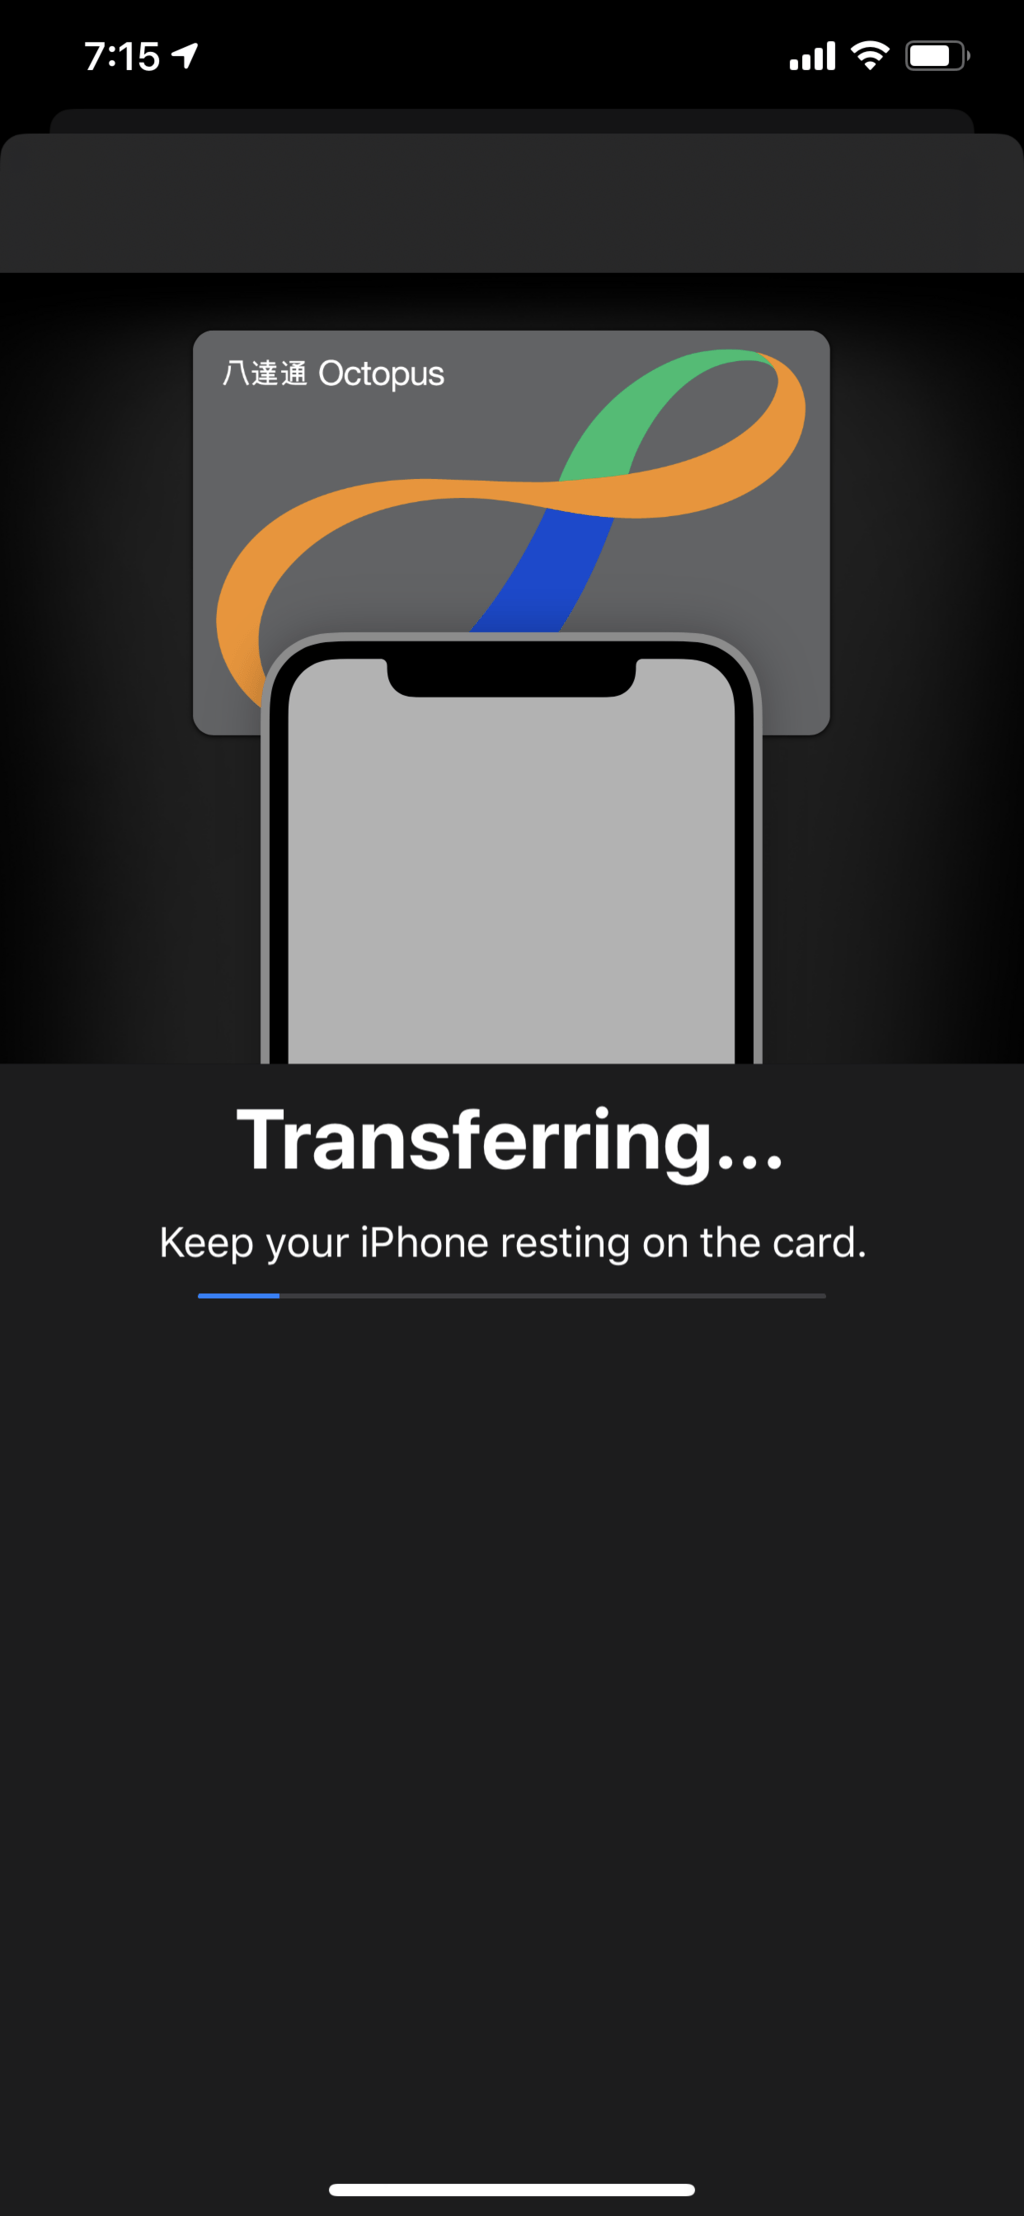 Transfering your Octopus card to your iPhone is pretty quick. / Image courtesy of Brent Deverman